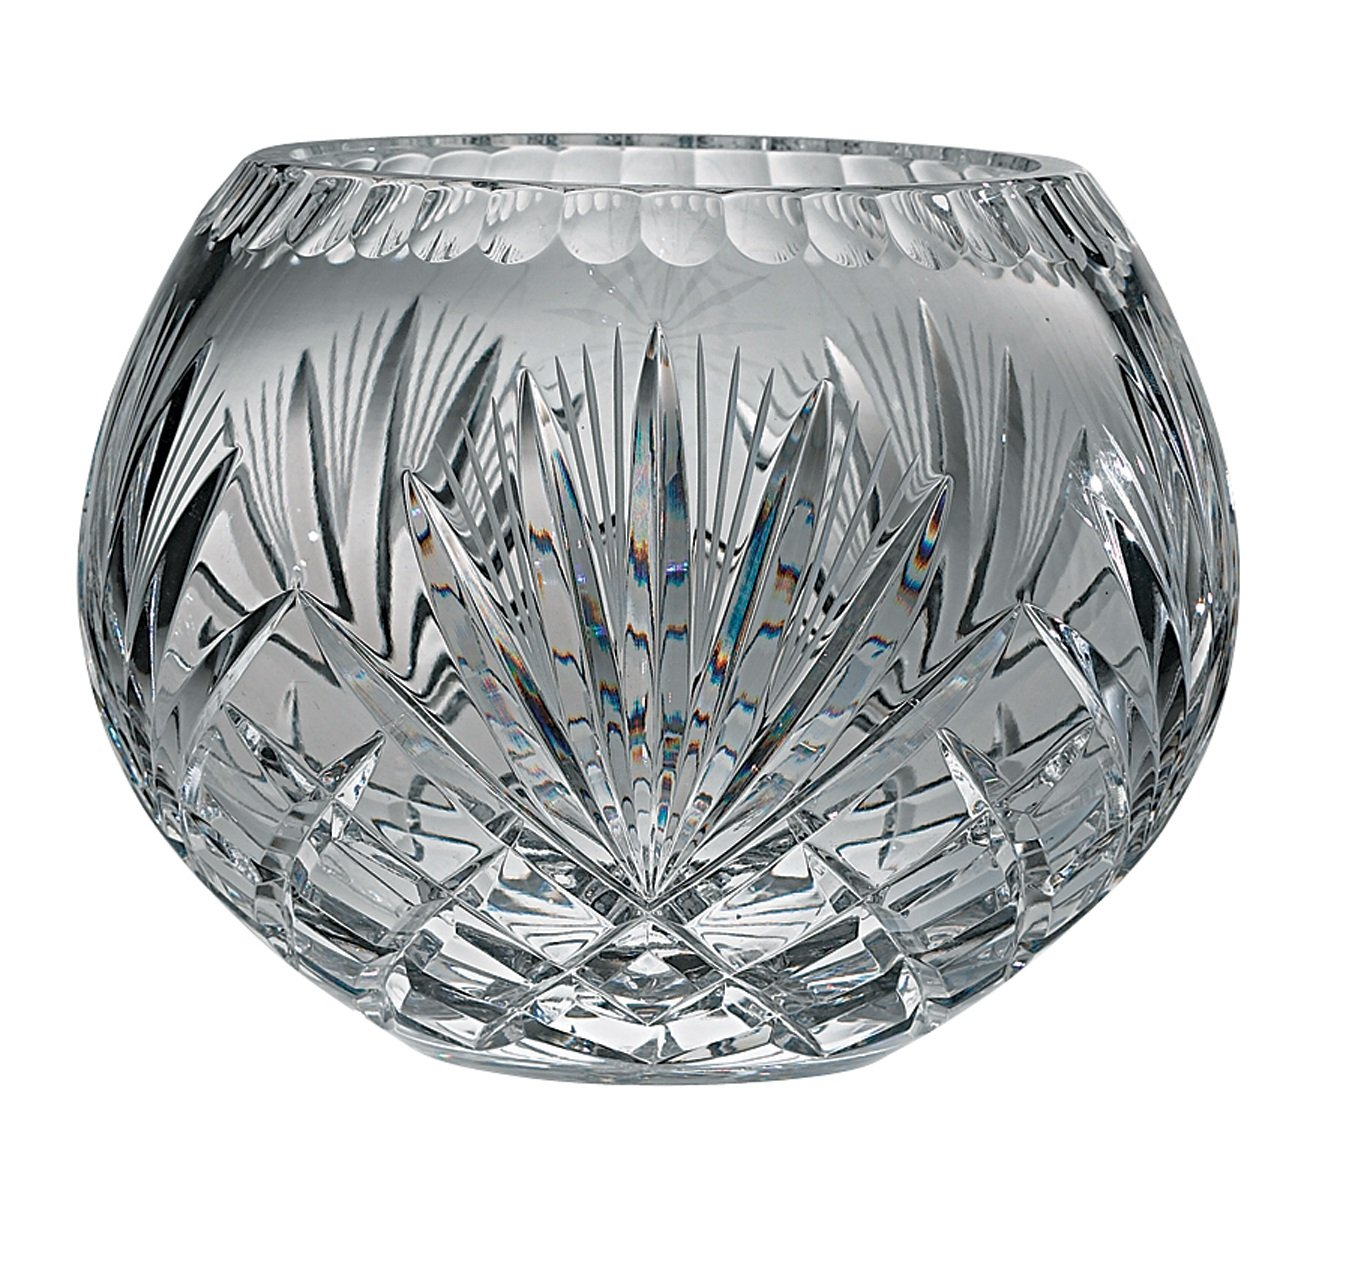 Majestic Gifts Hand Cut Crystal Bowl, 12-Inch, Rose